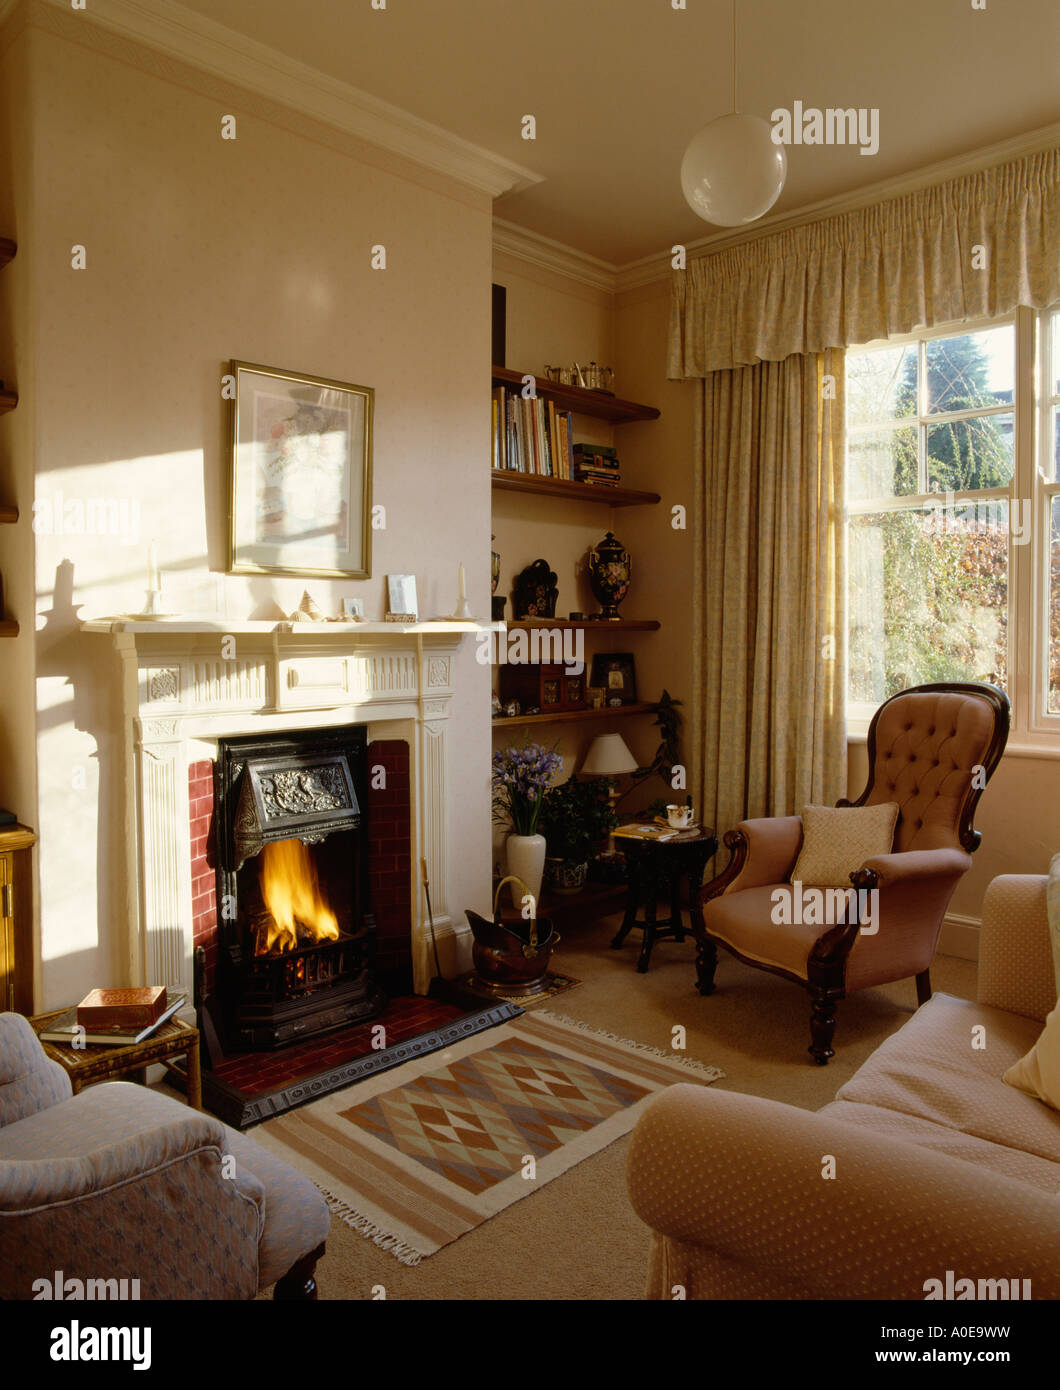 Fireplace With Fire Lit In Traditional Livingroom With